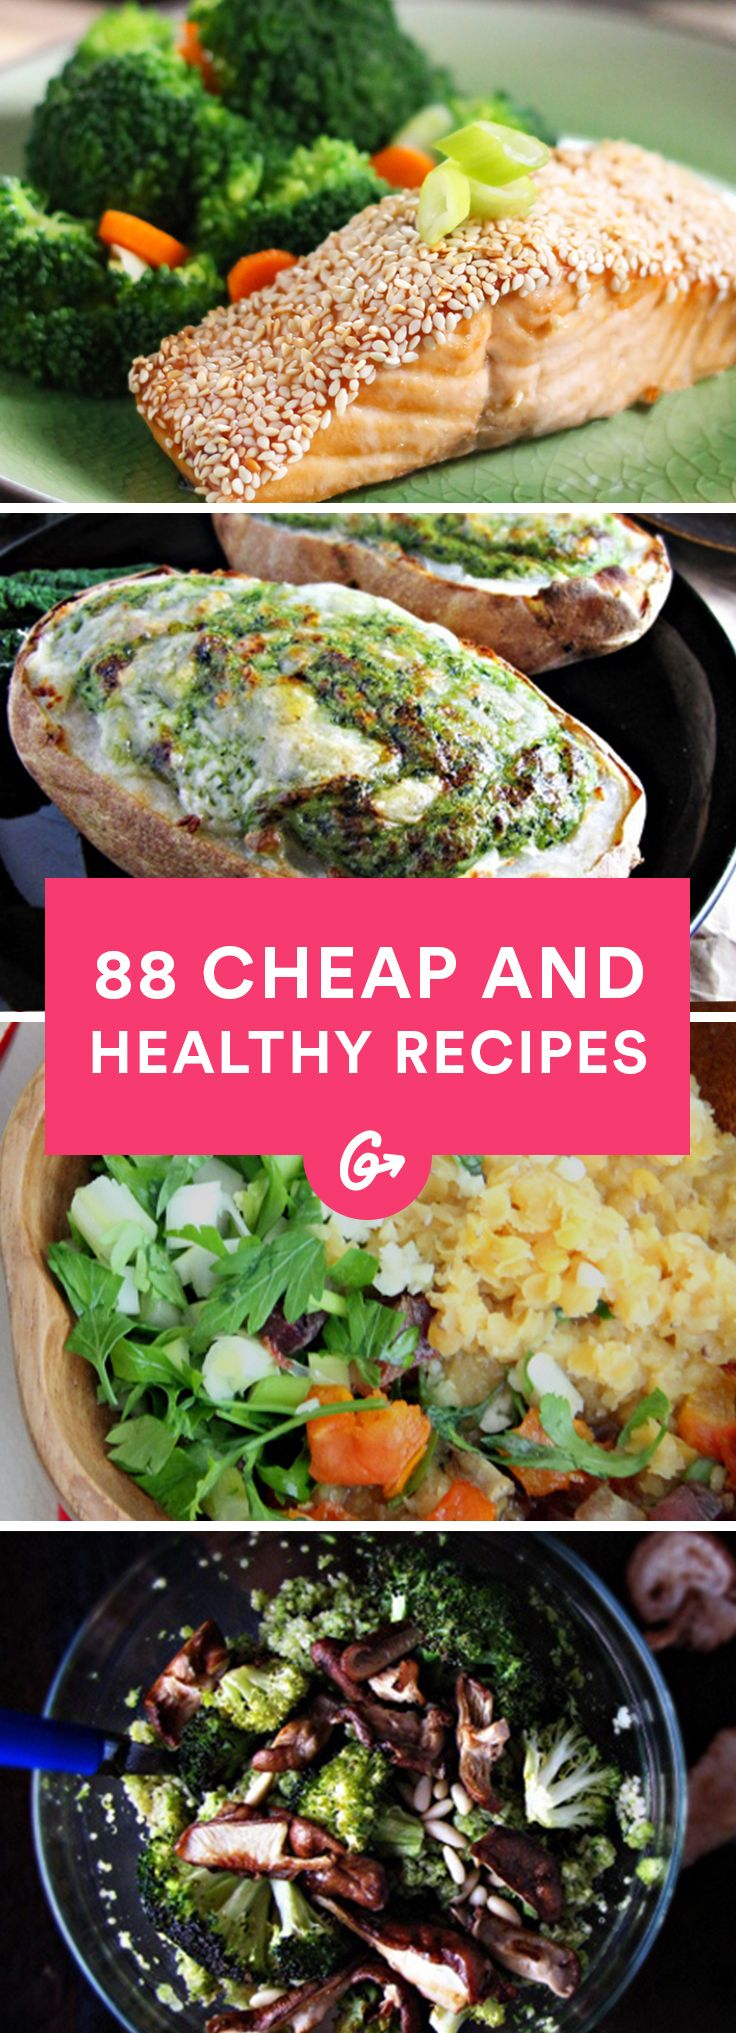 Mejores 9 imgenes de healthy recipes en pinterest comida sana 88 cheap and healthy lunch and dinner recipes forumfinder Image collections